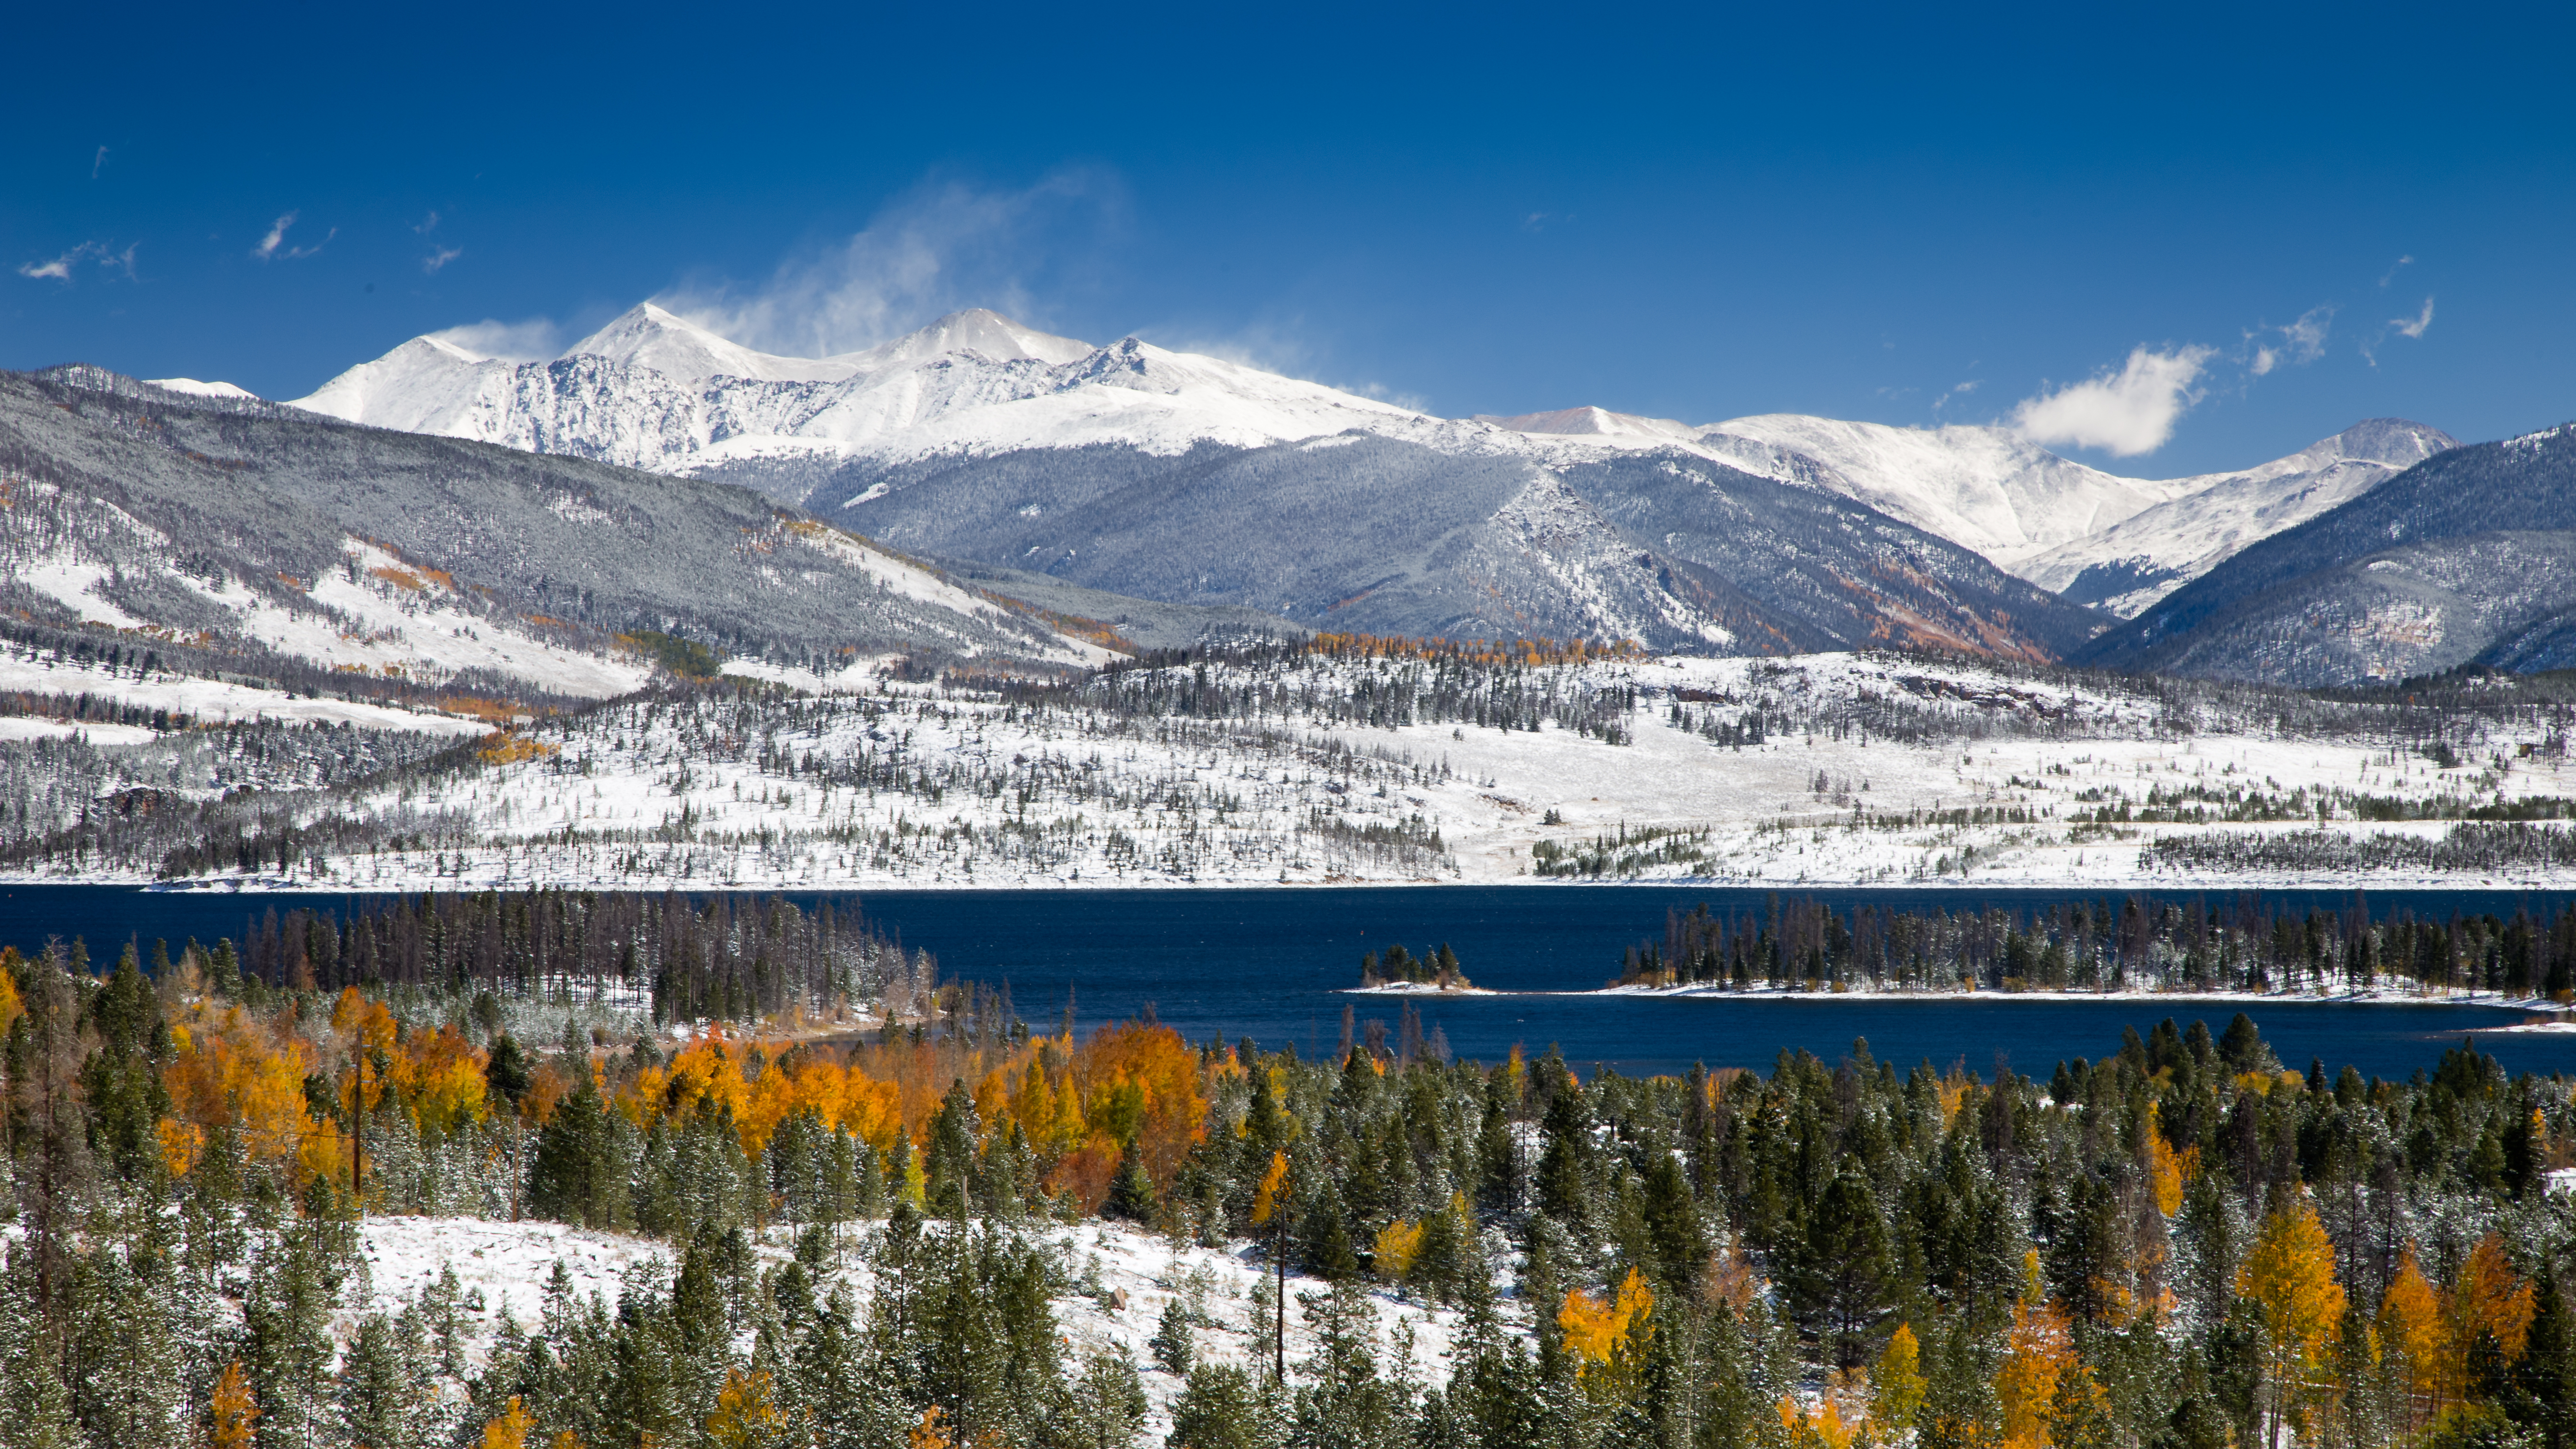 arapahoe national forest, colorado